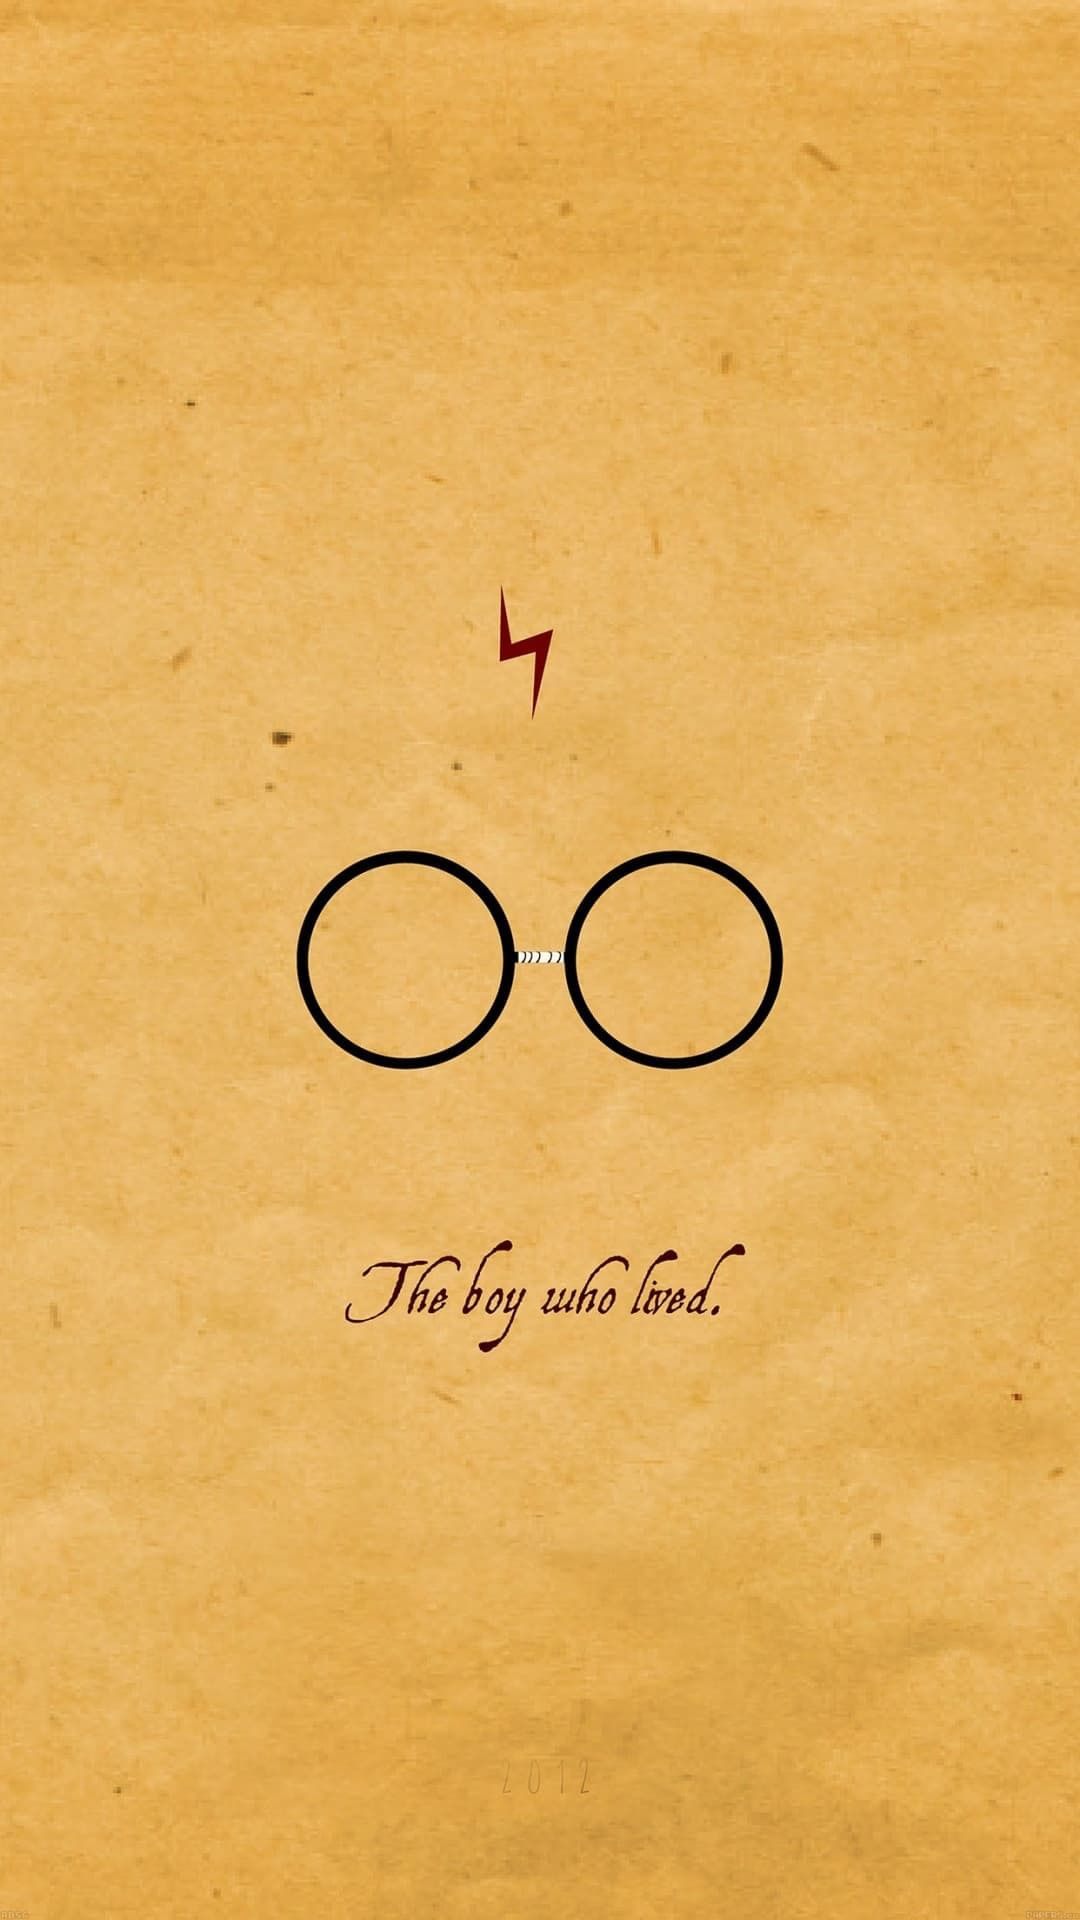 Pin By Zach Lesher On Iphone Wallpaper Harry Potter Iphone Wallpaper Harry Potter Wallpaper Harry Potter Iphone